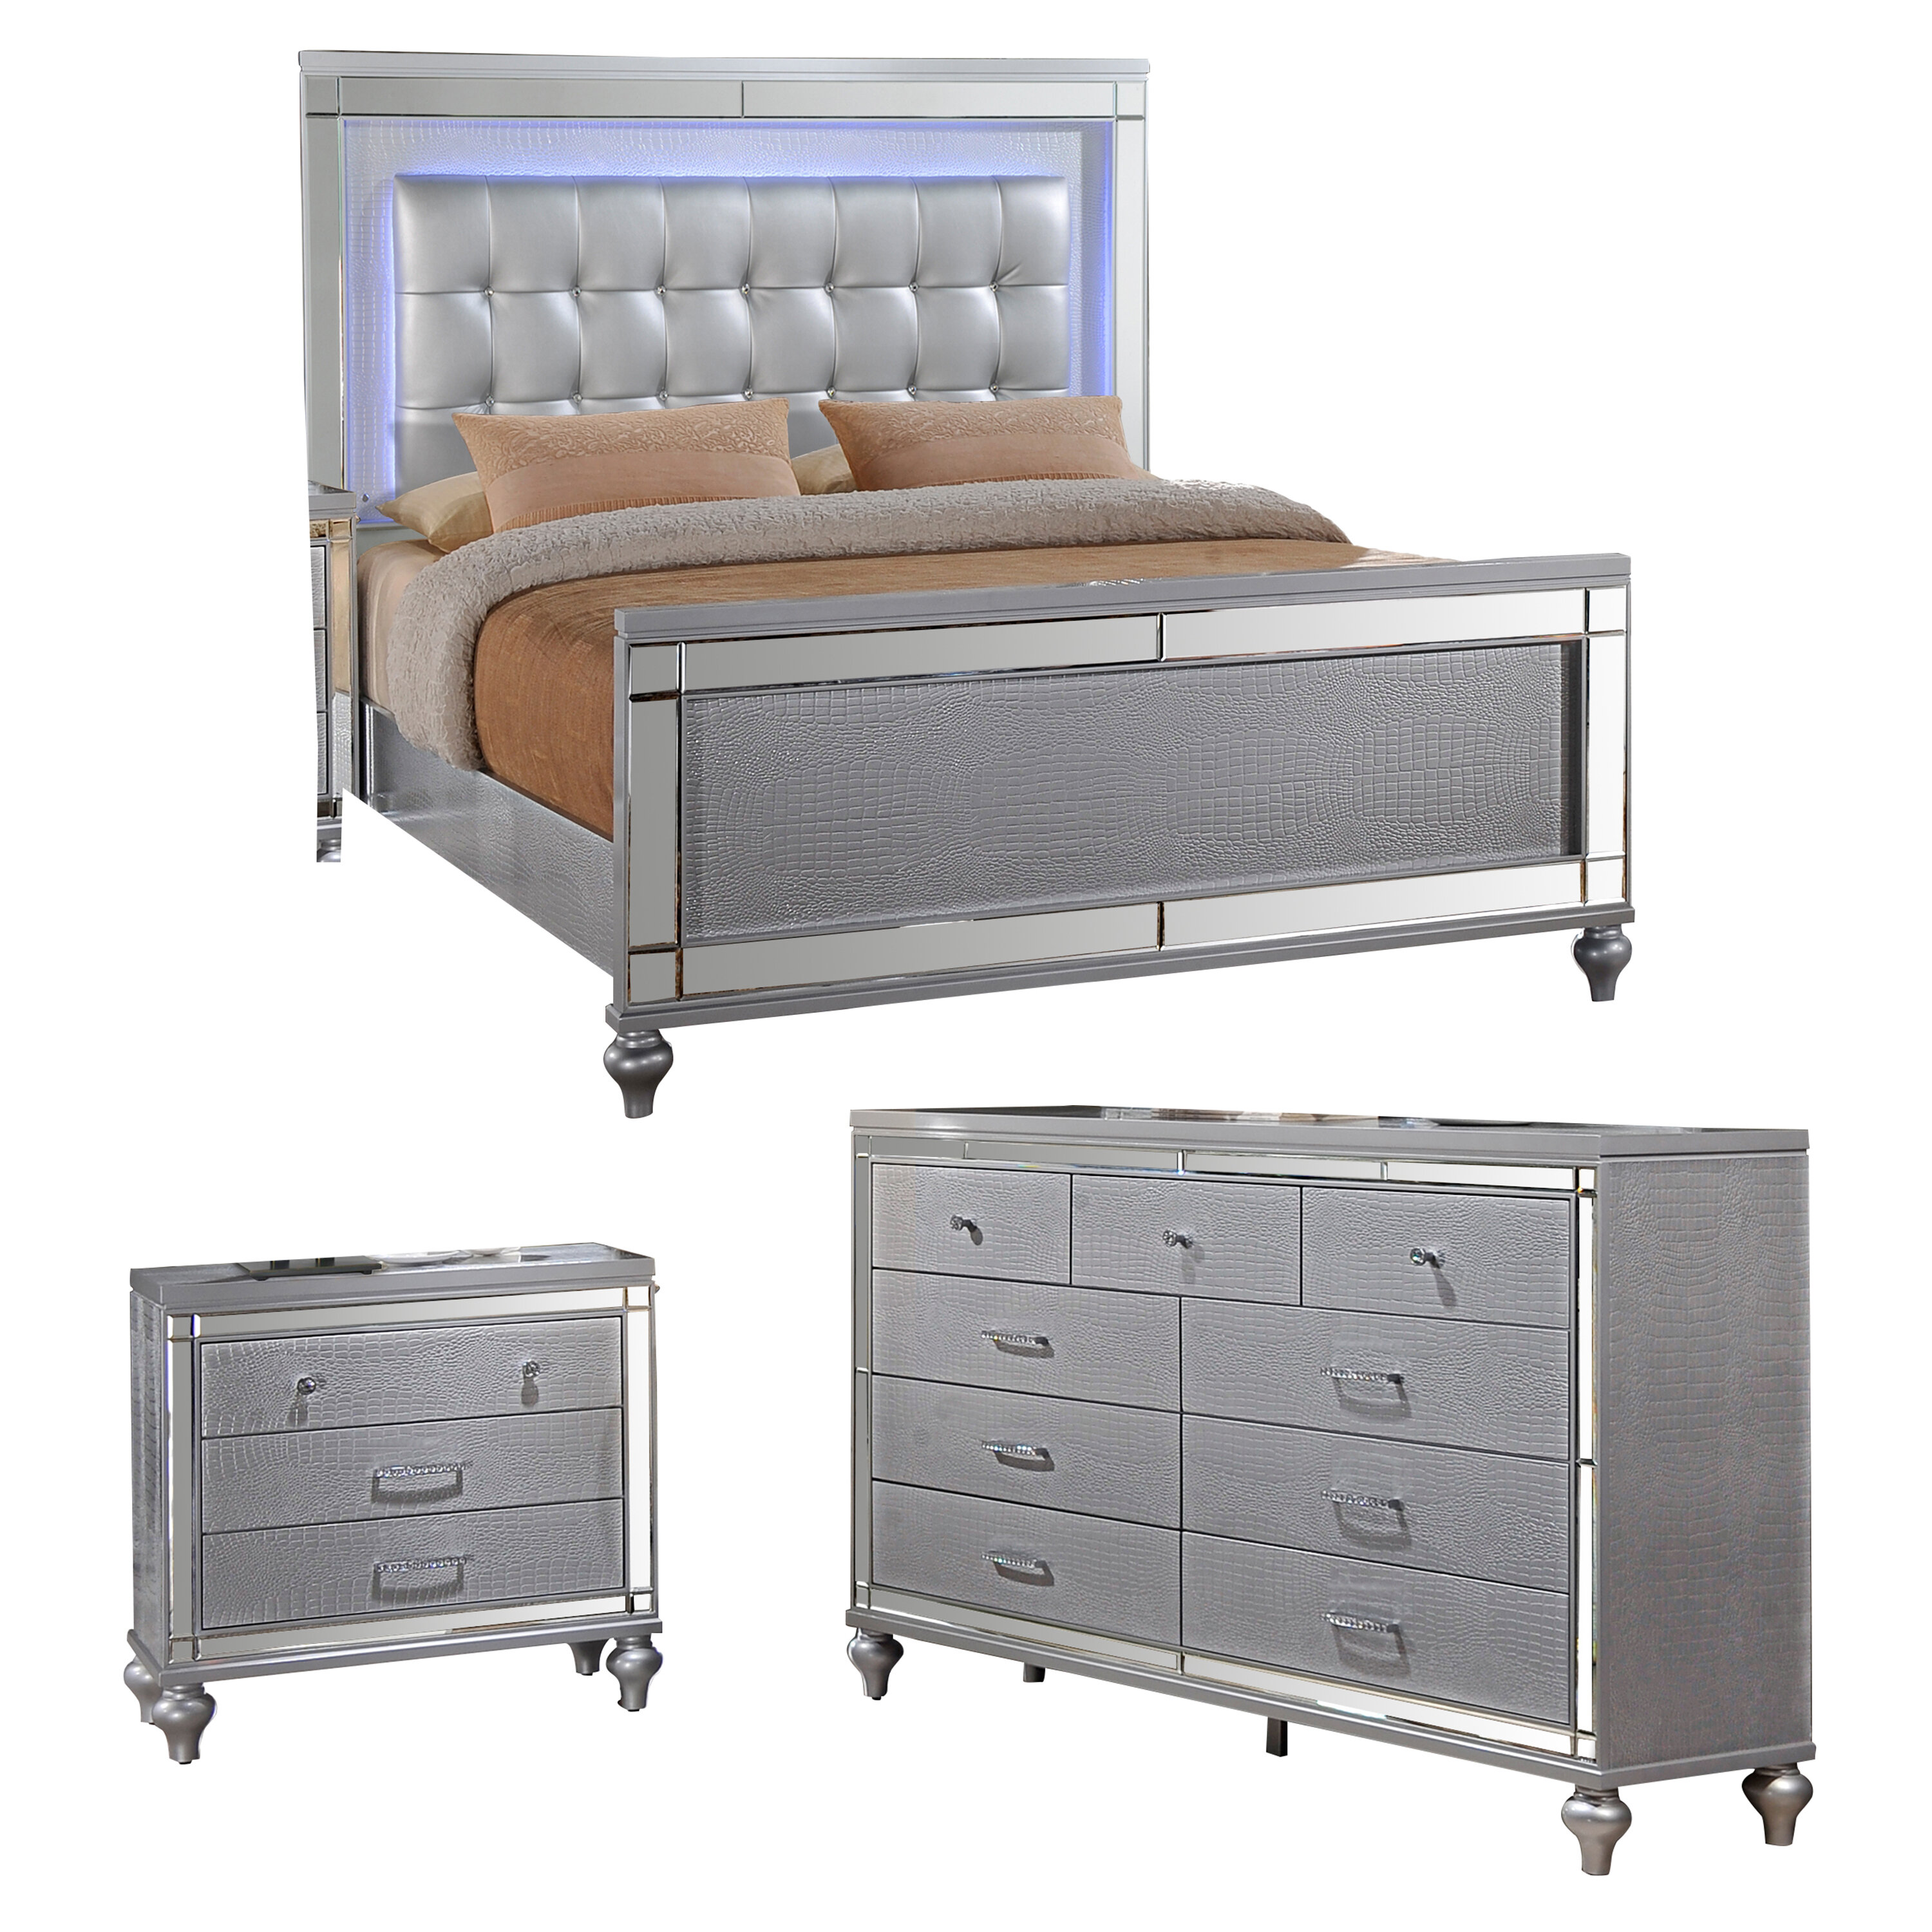 inspirations sheets mirror furniture range with king dark white the ashley best sets cream gloss ideas size chest cl bedroom platform media bed for wood cheap modern set under queen wooden drawers high arden